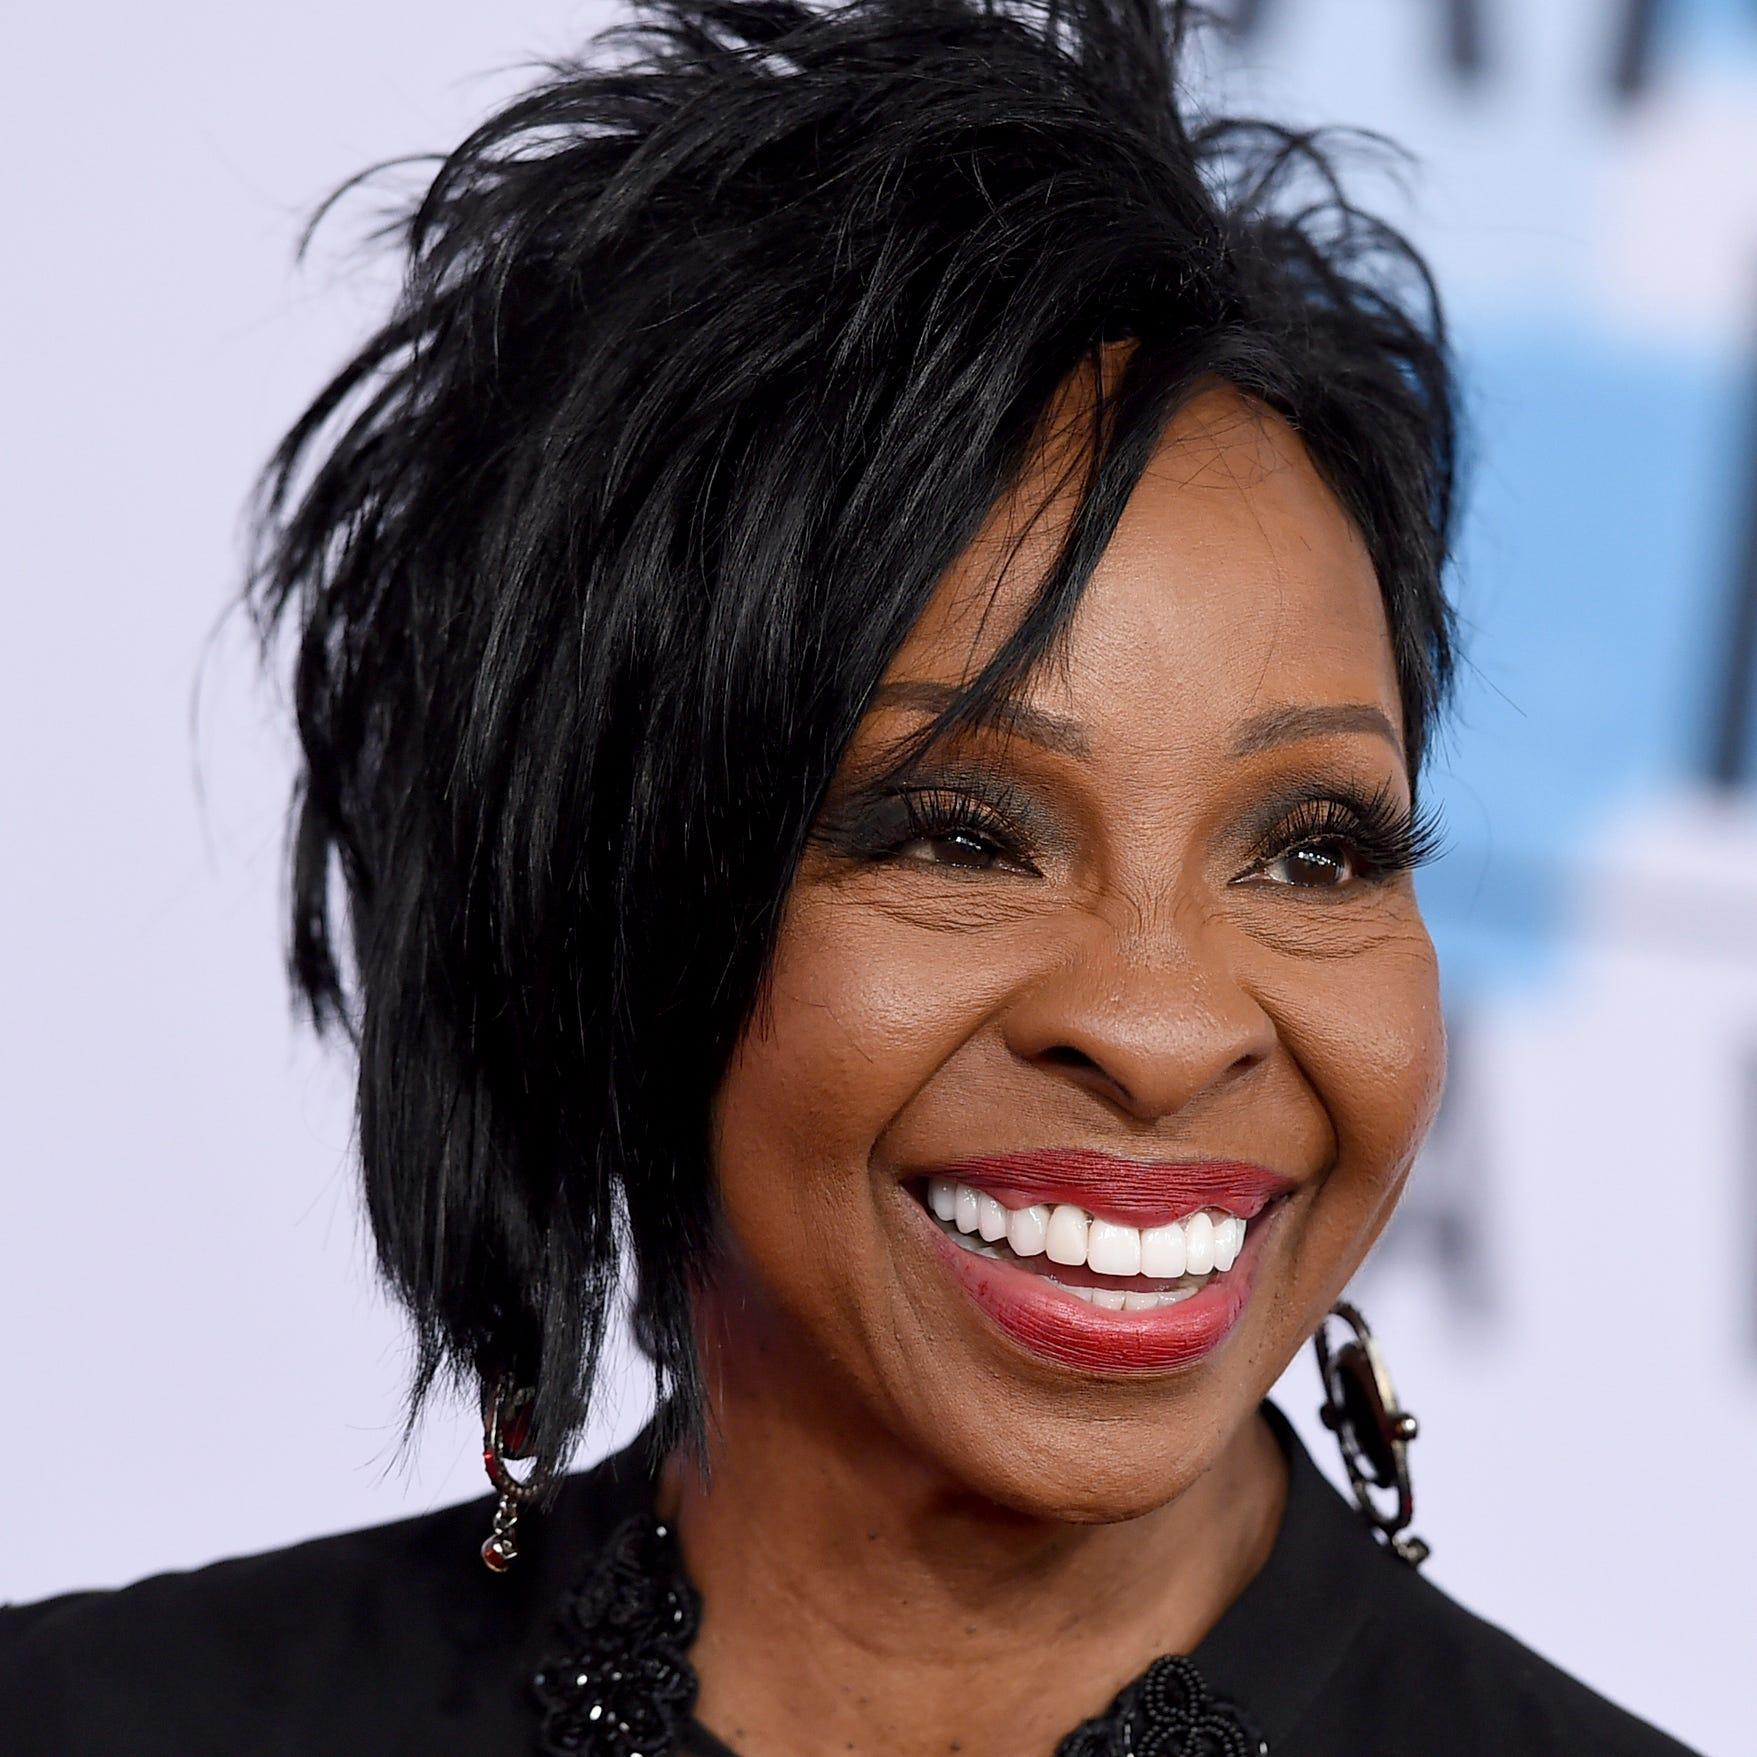 Gladys Knight talks Colin Kaepernick ahead of Super Bowl performance